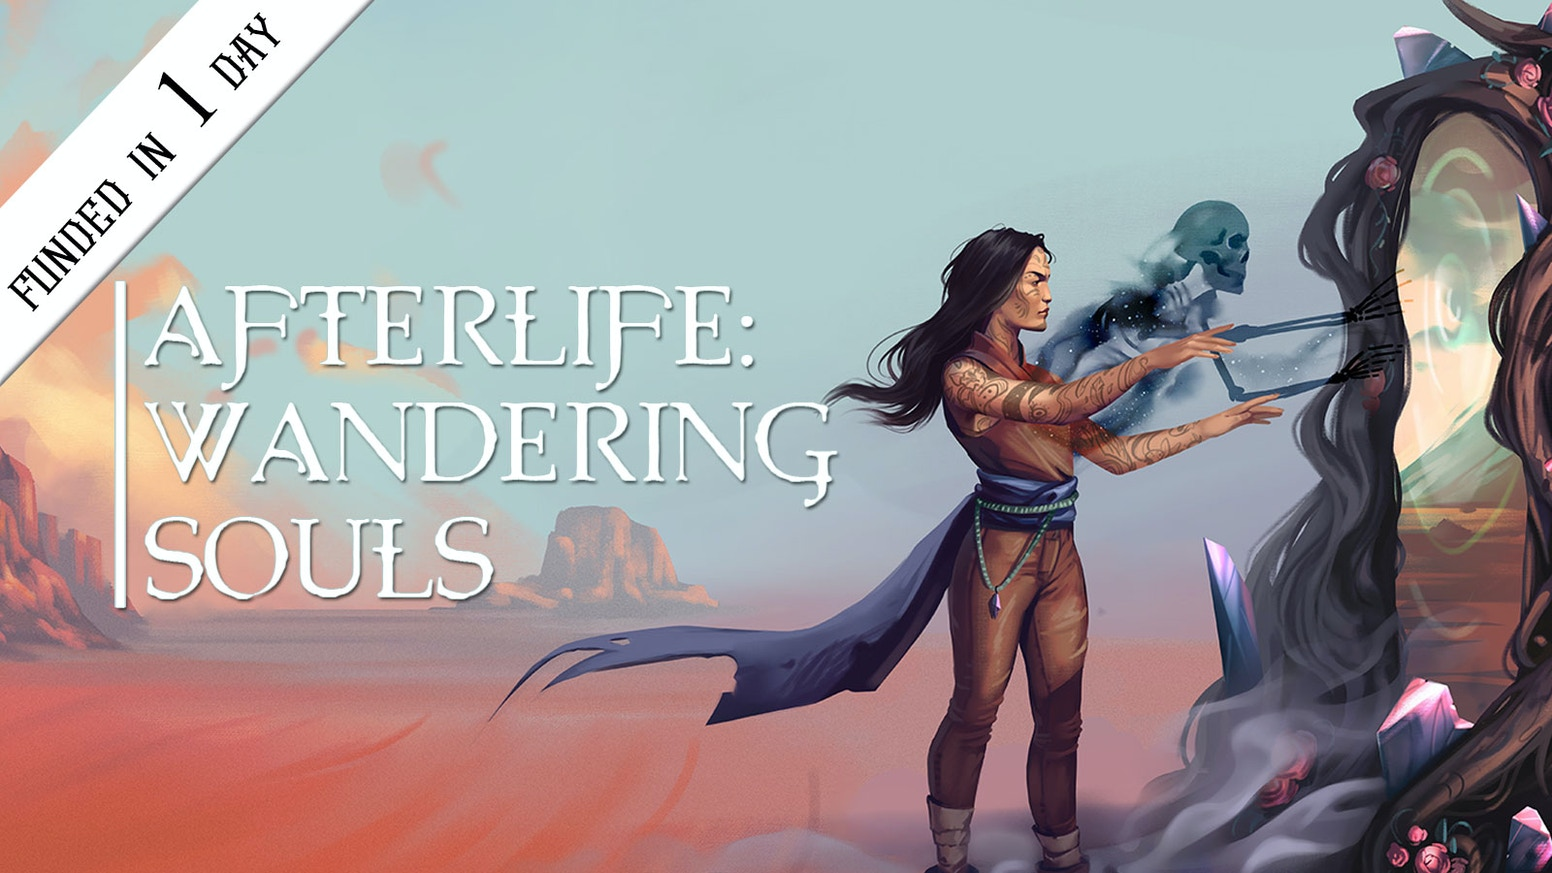 Afterlife: Wandering Souls is a tabletop RPG about recovering lost memories and exploring strange worlds.